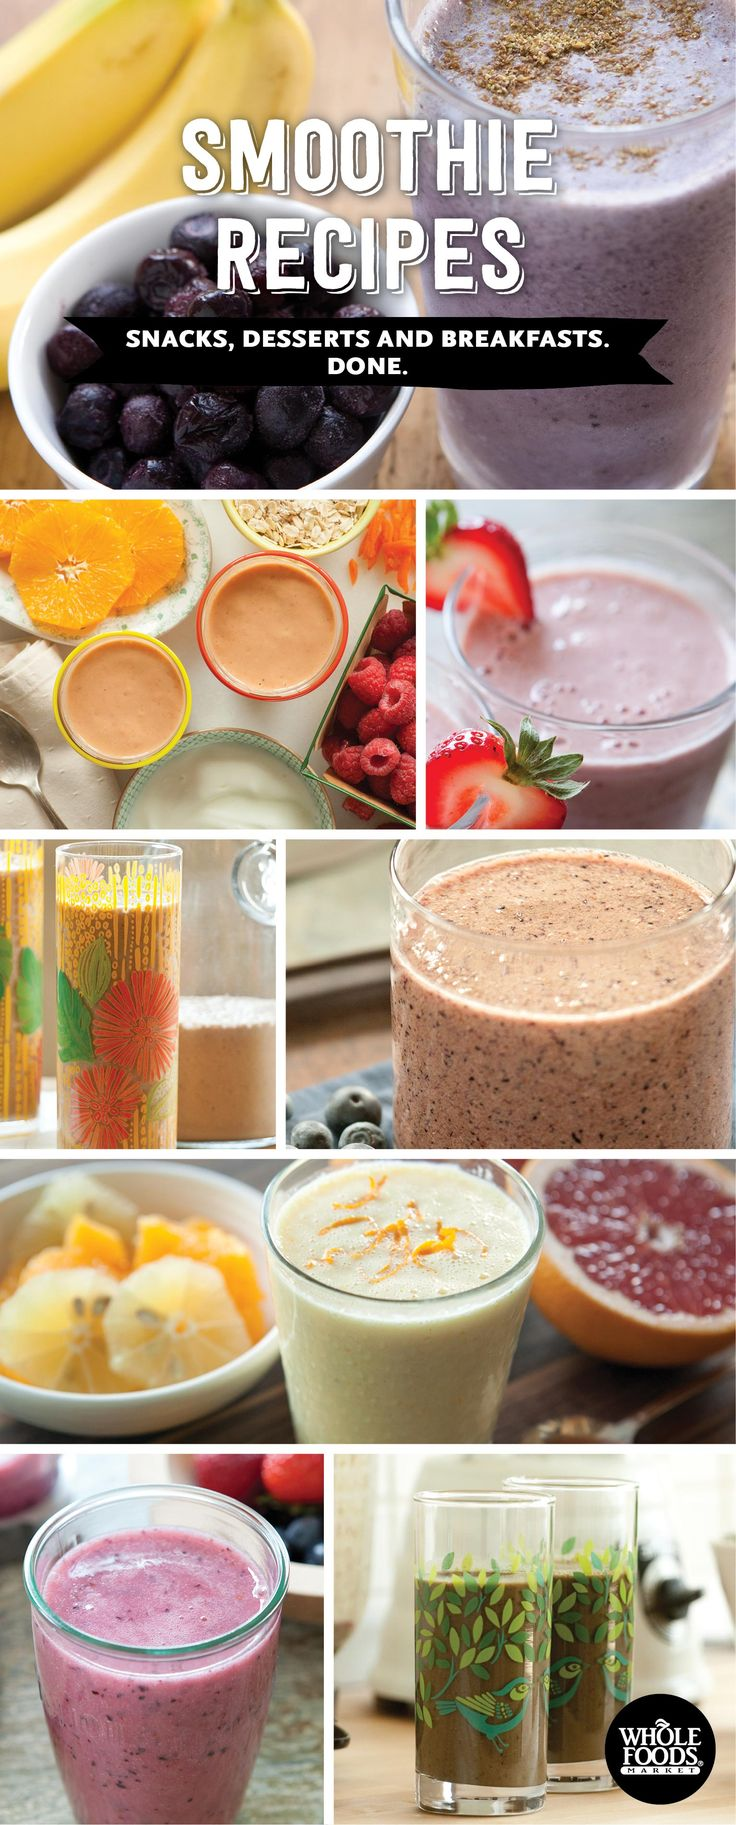 174 best Healthy Recipes & Tips images on Pinterest